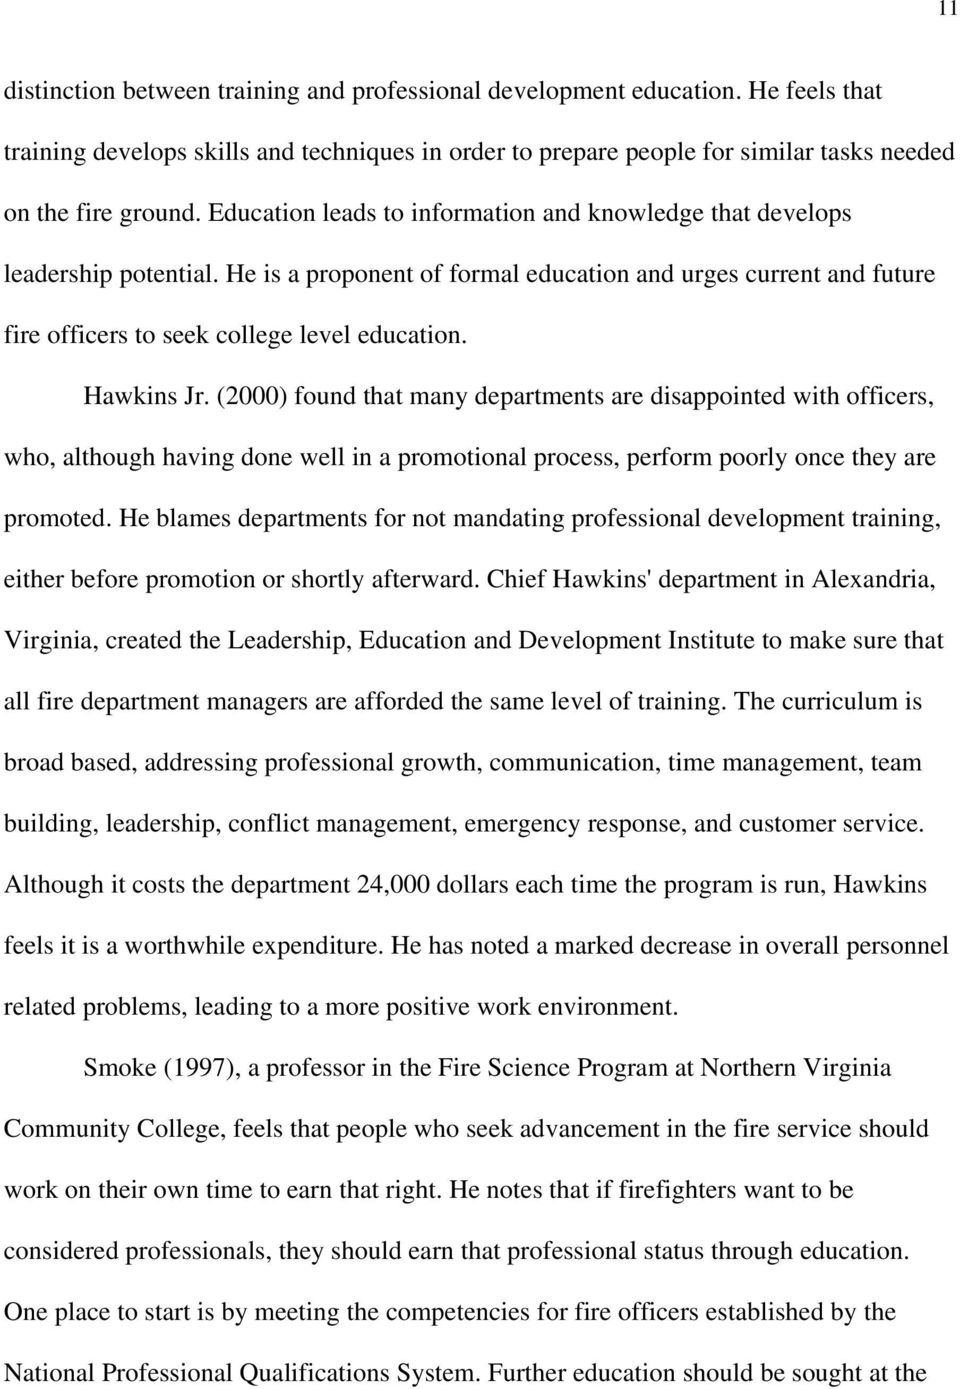 Hawkins Jr. (2000) found that many departments are disappointed with officers, who, although having done well in a promotional process, perform poorly once they are promoted.